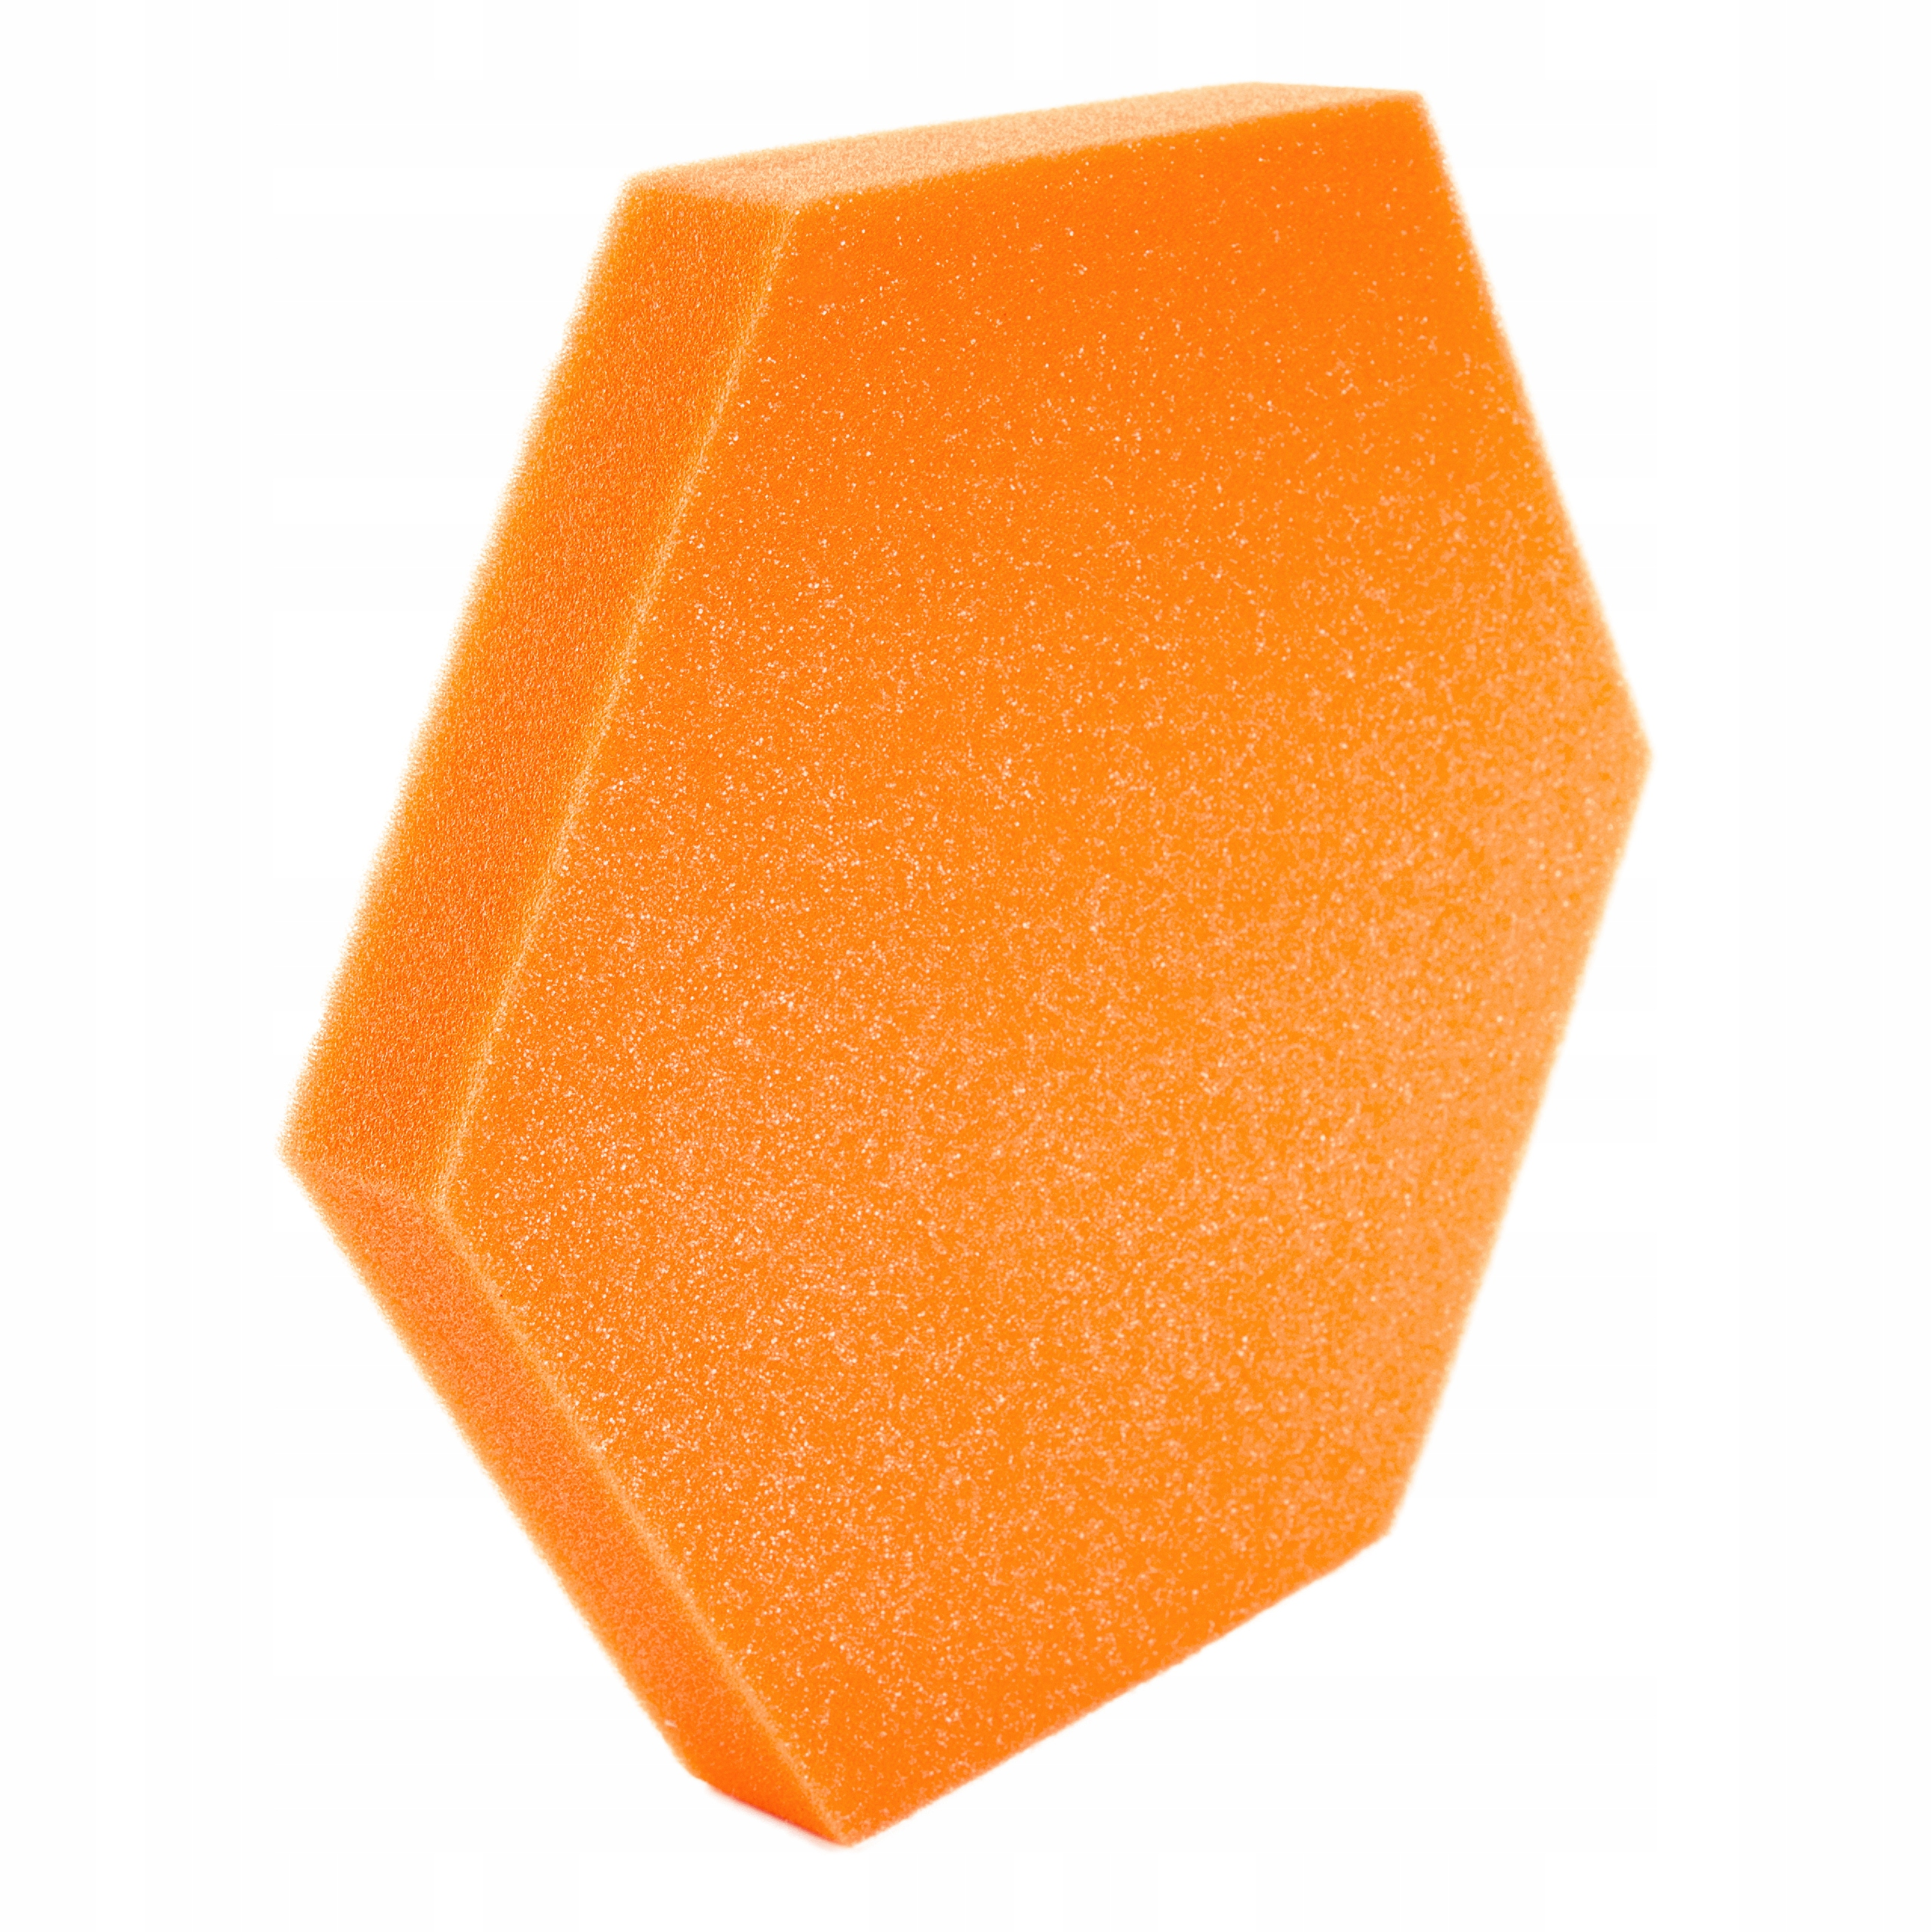 Item FOAM ACOUSTIC PANEL ACOUSTIC HEXAGON 5cm